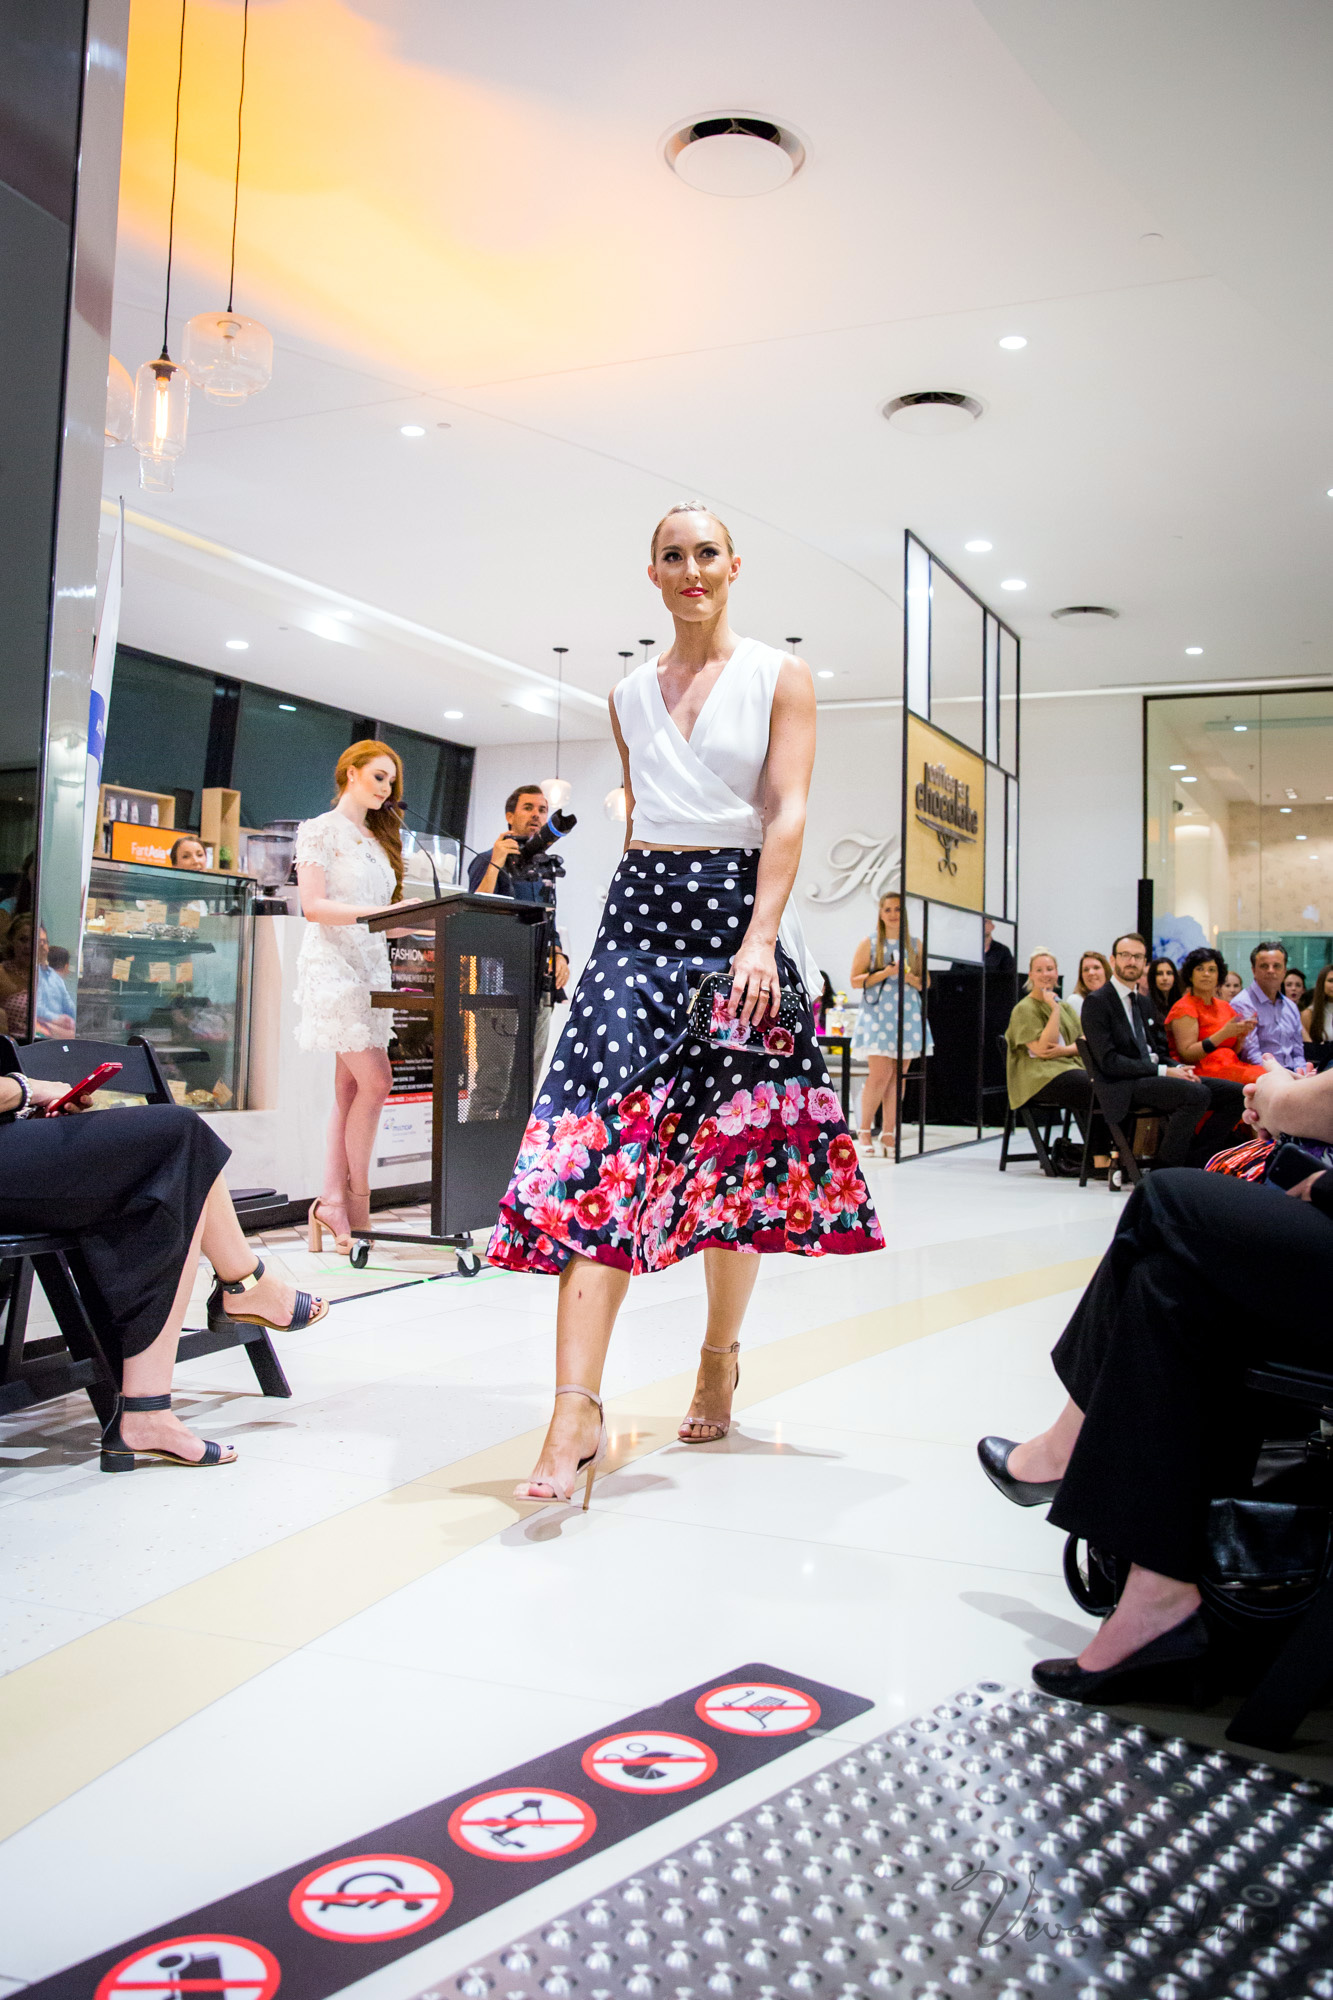 VivaStudio_Design_Photograpphy_Brisbane_Event_Fashionable_20151105_0164